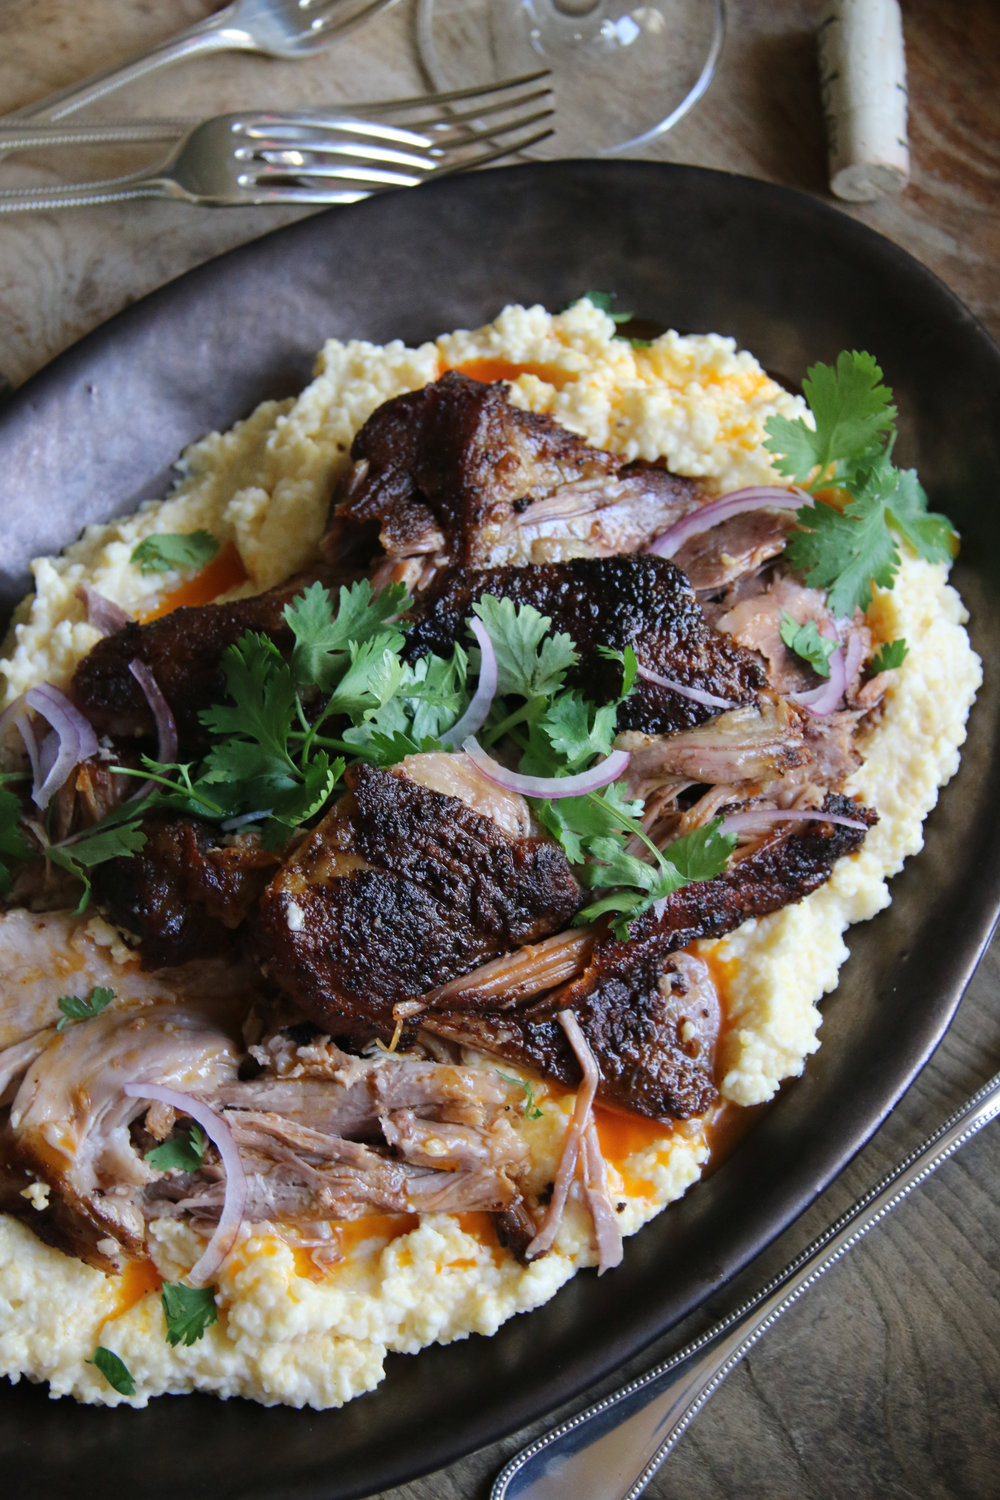 Garlic Studded Pork Roast Creamy Grits 3.jpg